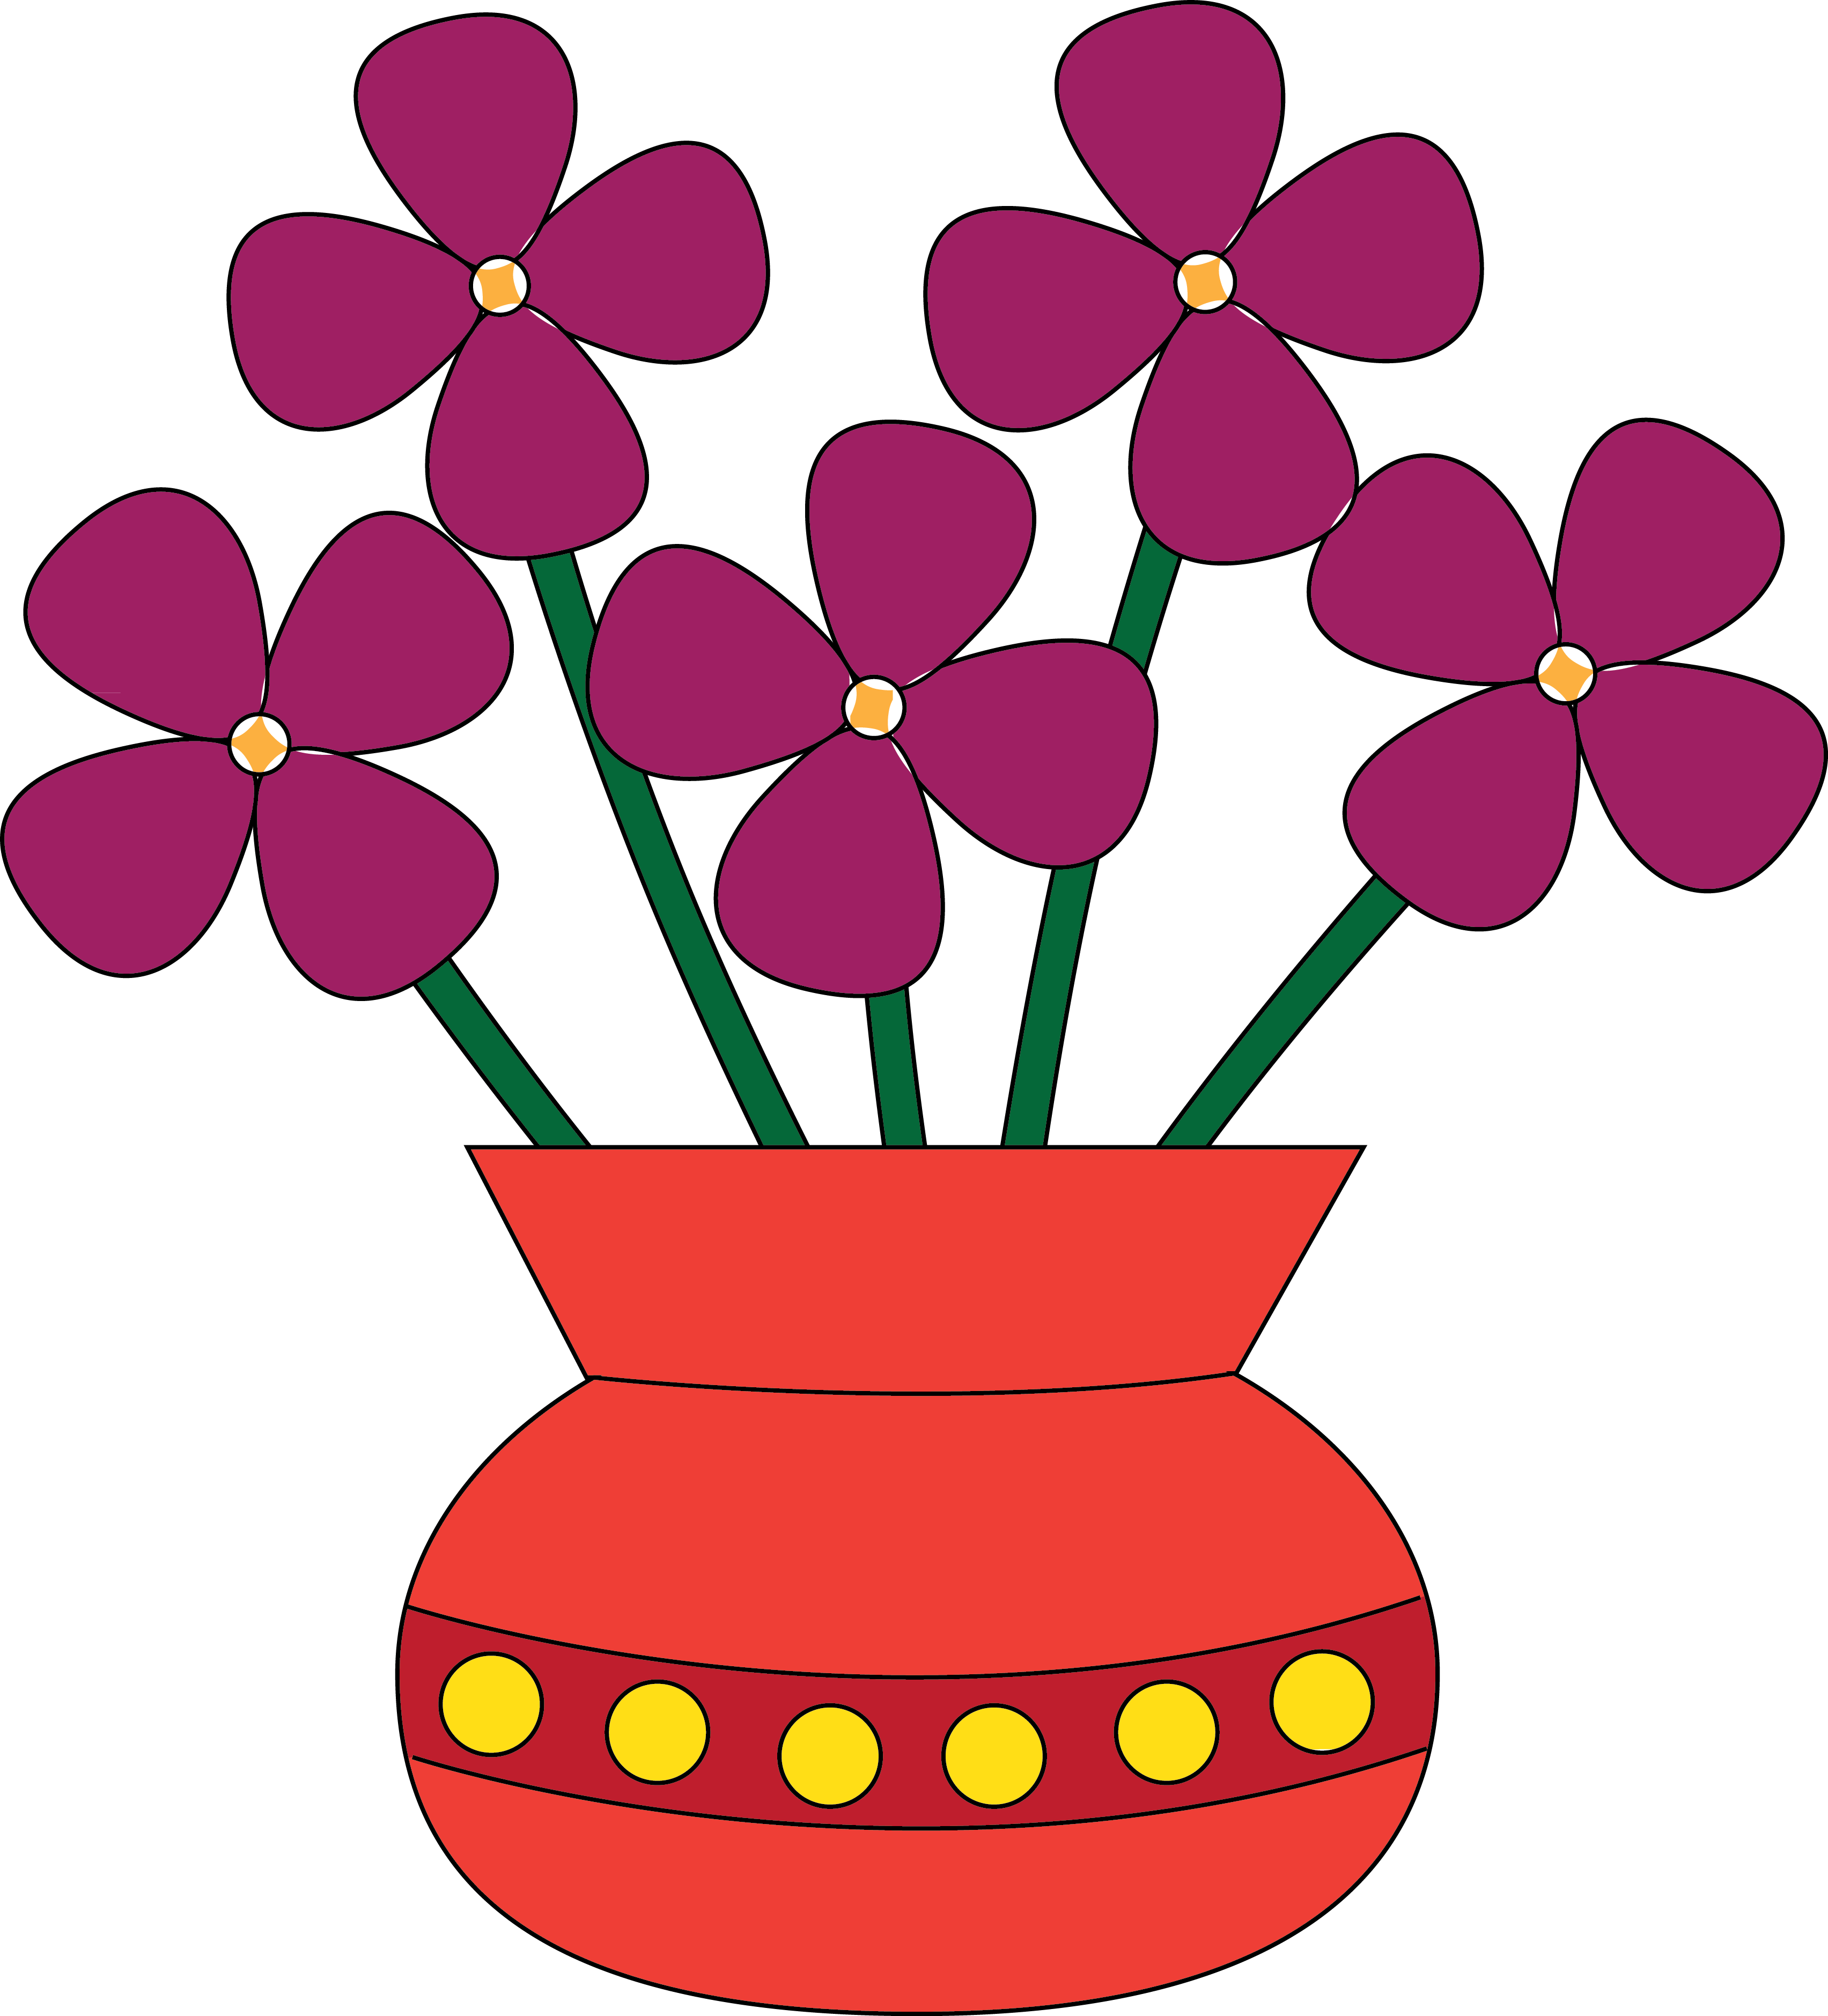 Flowers clipart card. Pin by elodie saphoret